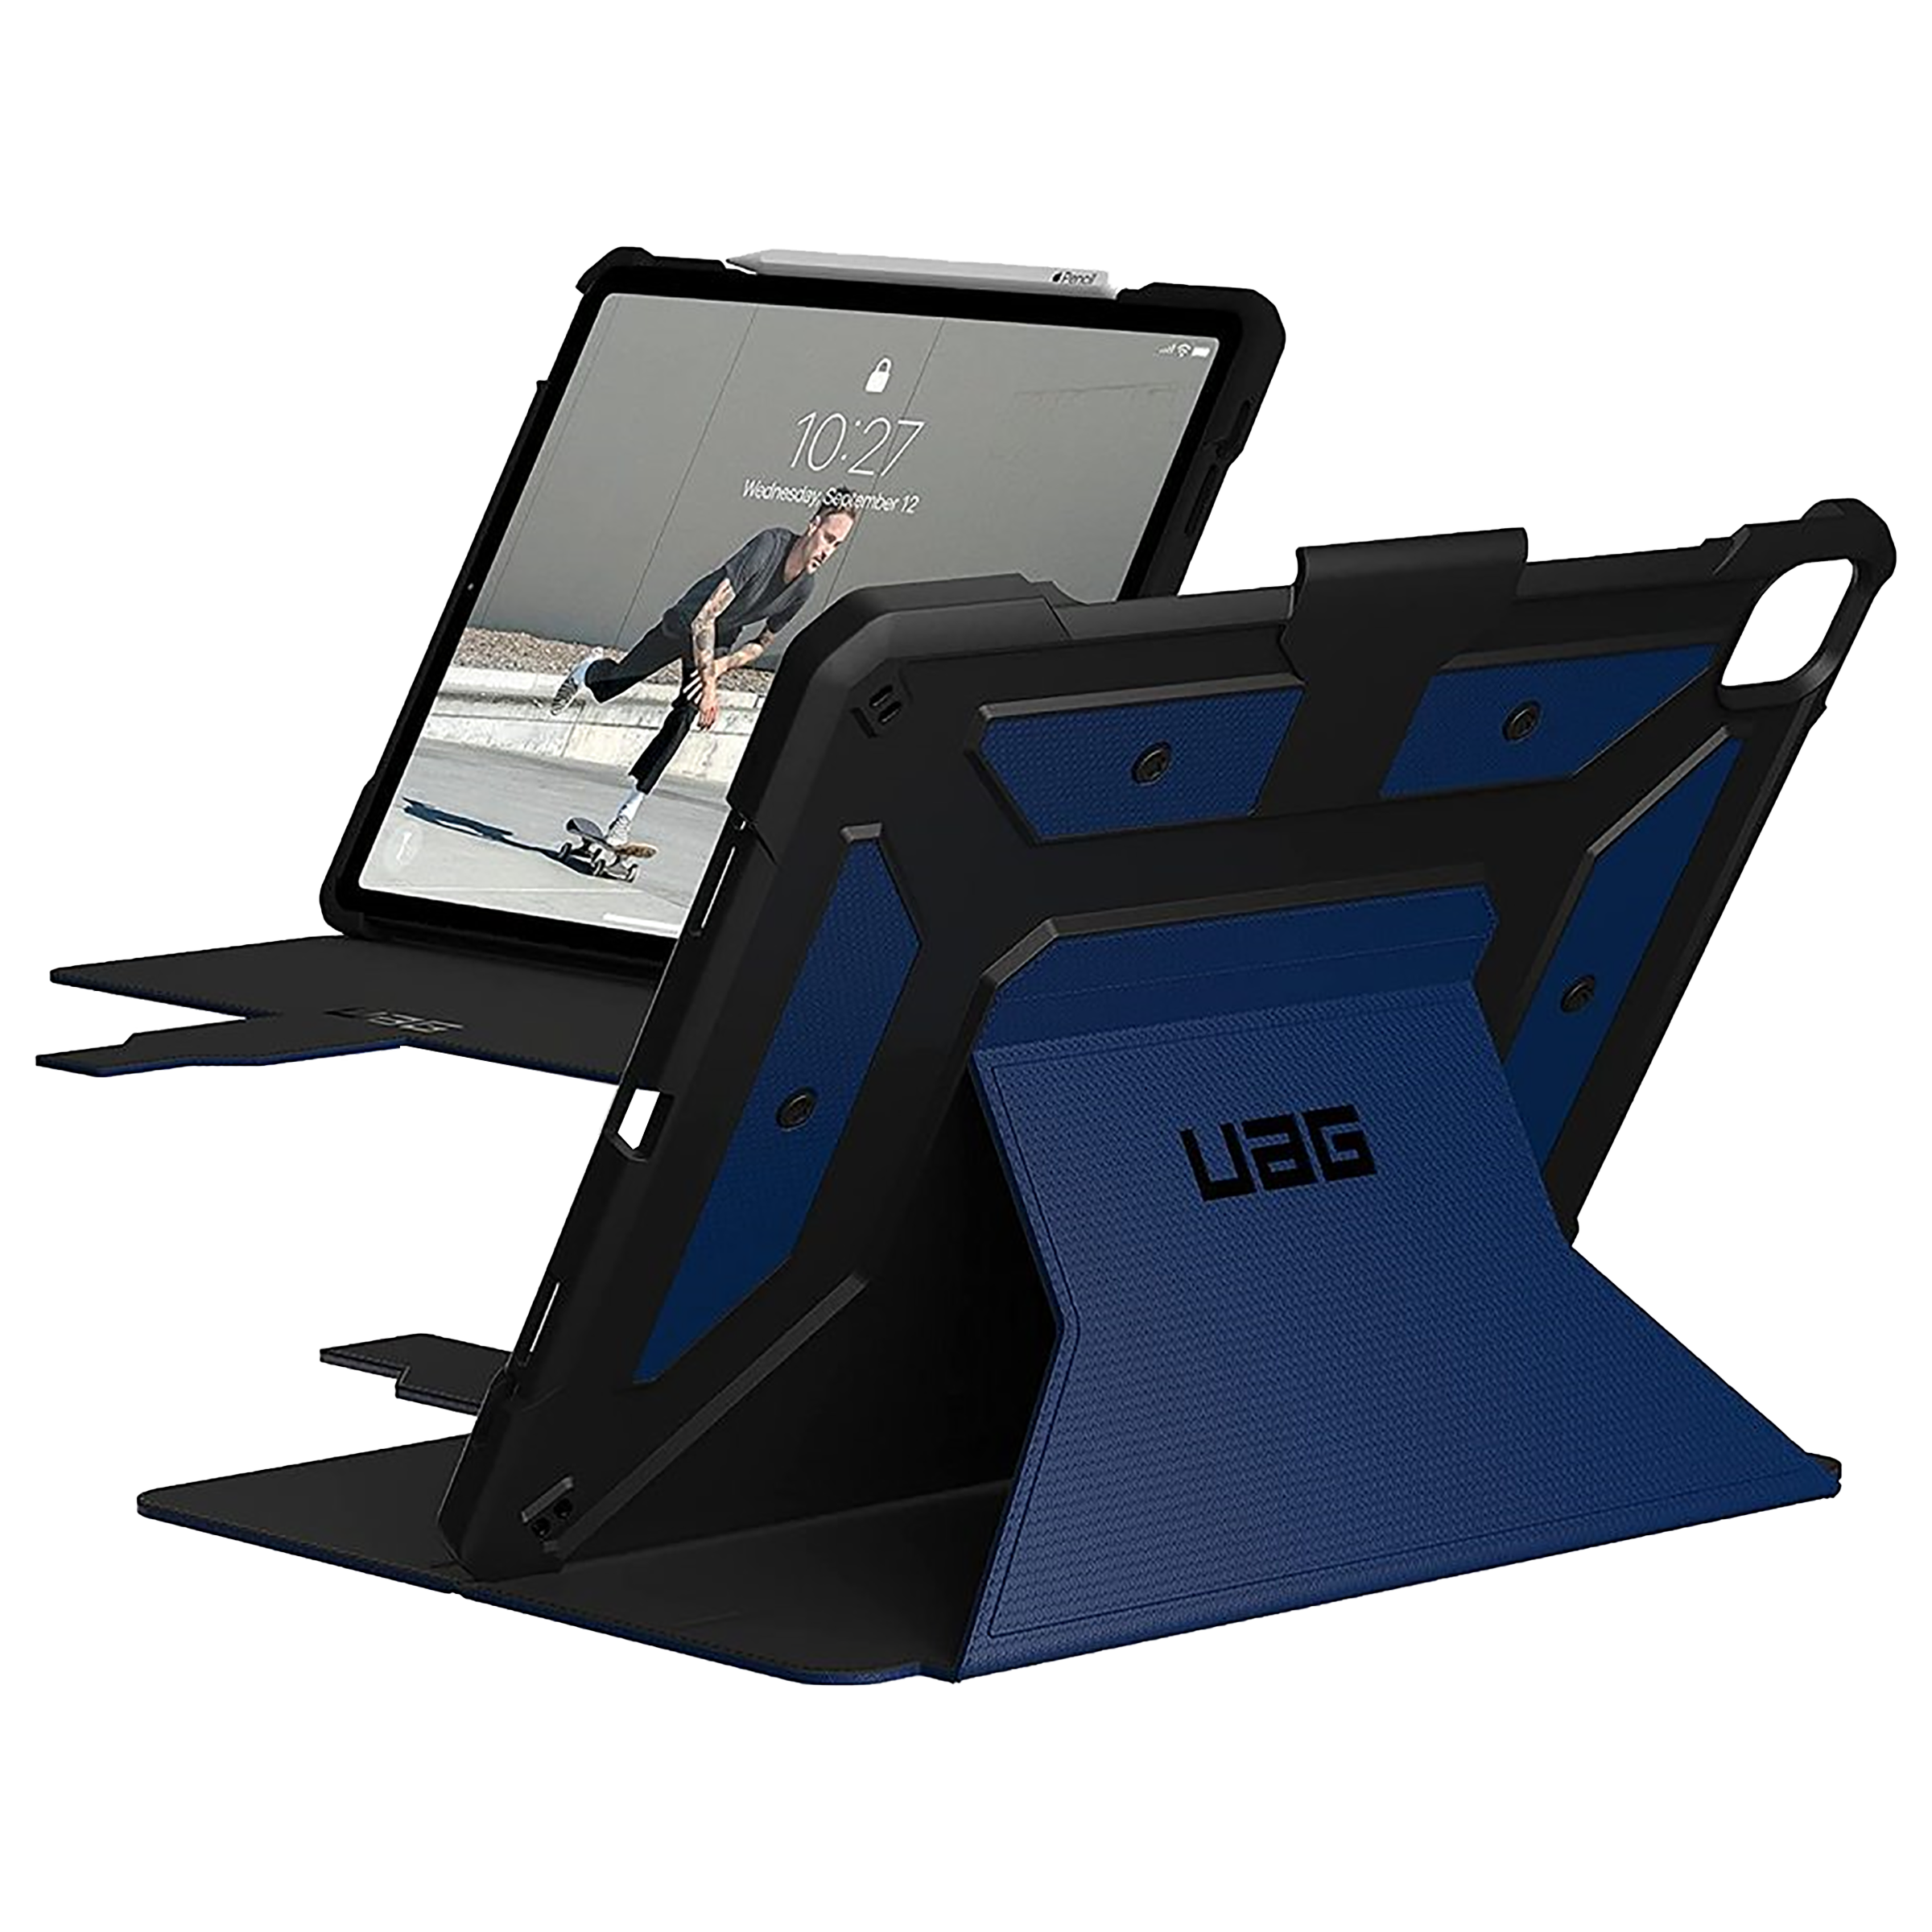 UAG Metropolis Thermoplastic Polyurethane Flip Case with Stand For Apple iPad Pro 12.9 Inch (Feather-Light Construction, UGMP_129G5_CB, Cobalt)_1